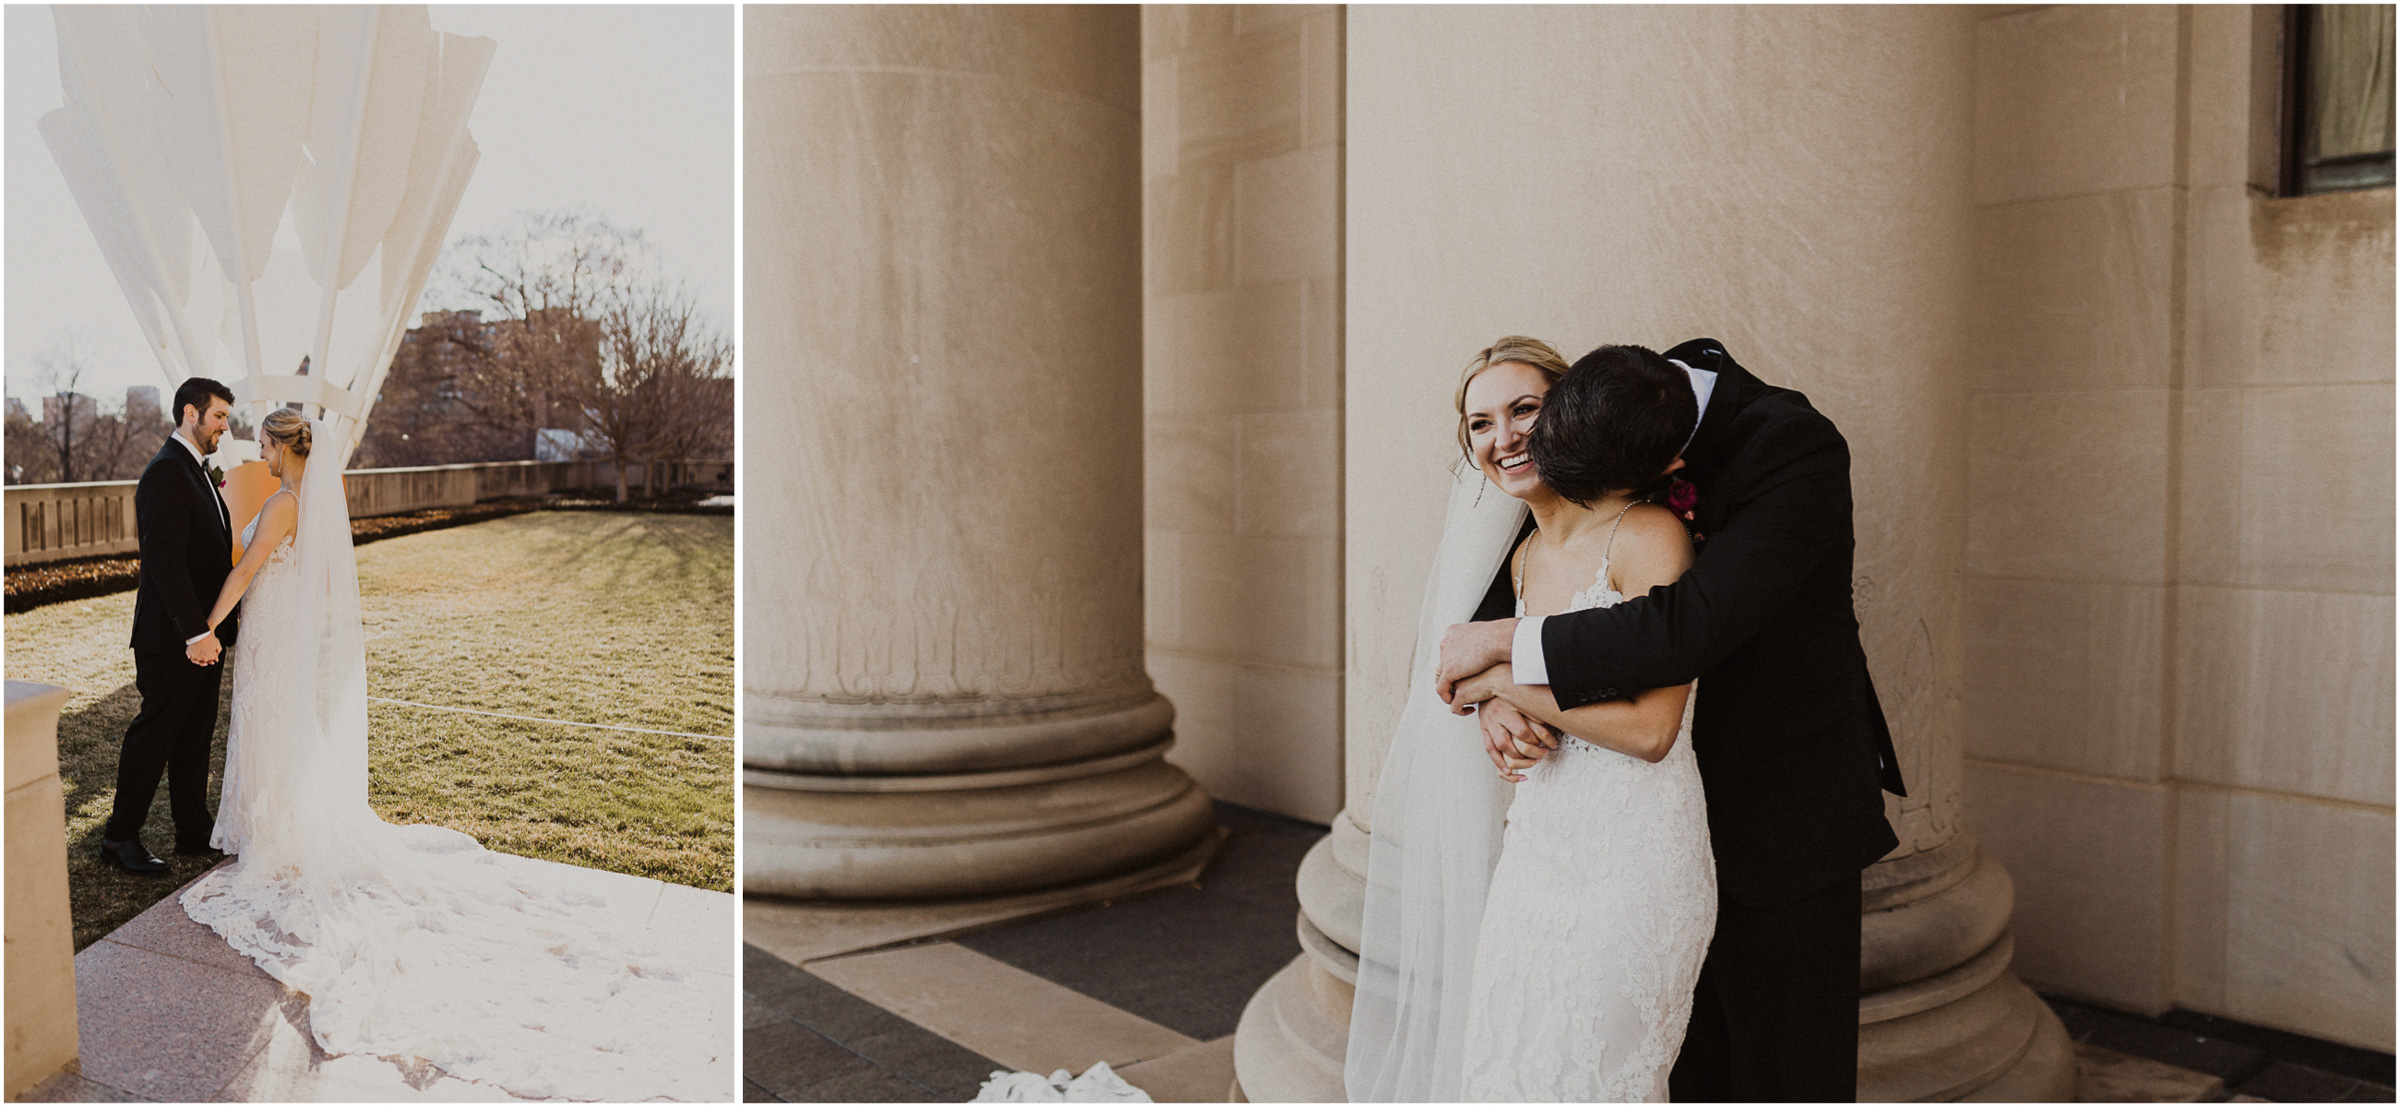 alyssa barletter photography nelson atkins museum intimate romantic spring wedding pilgrim chapel kcmo-30.jpg